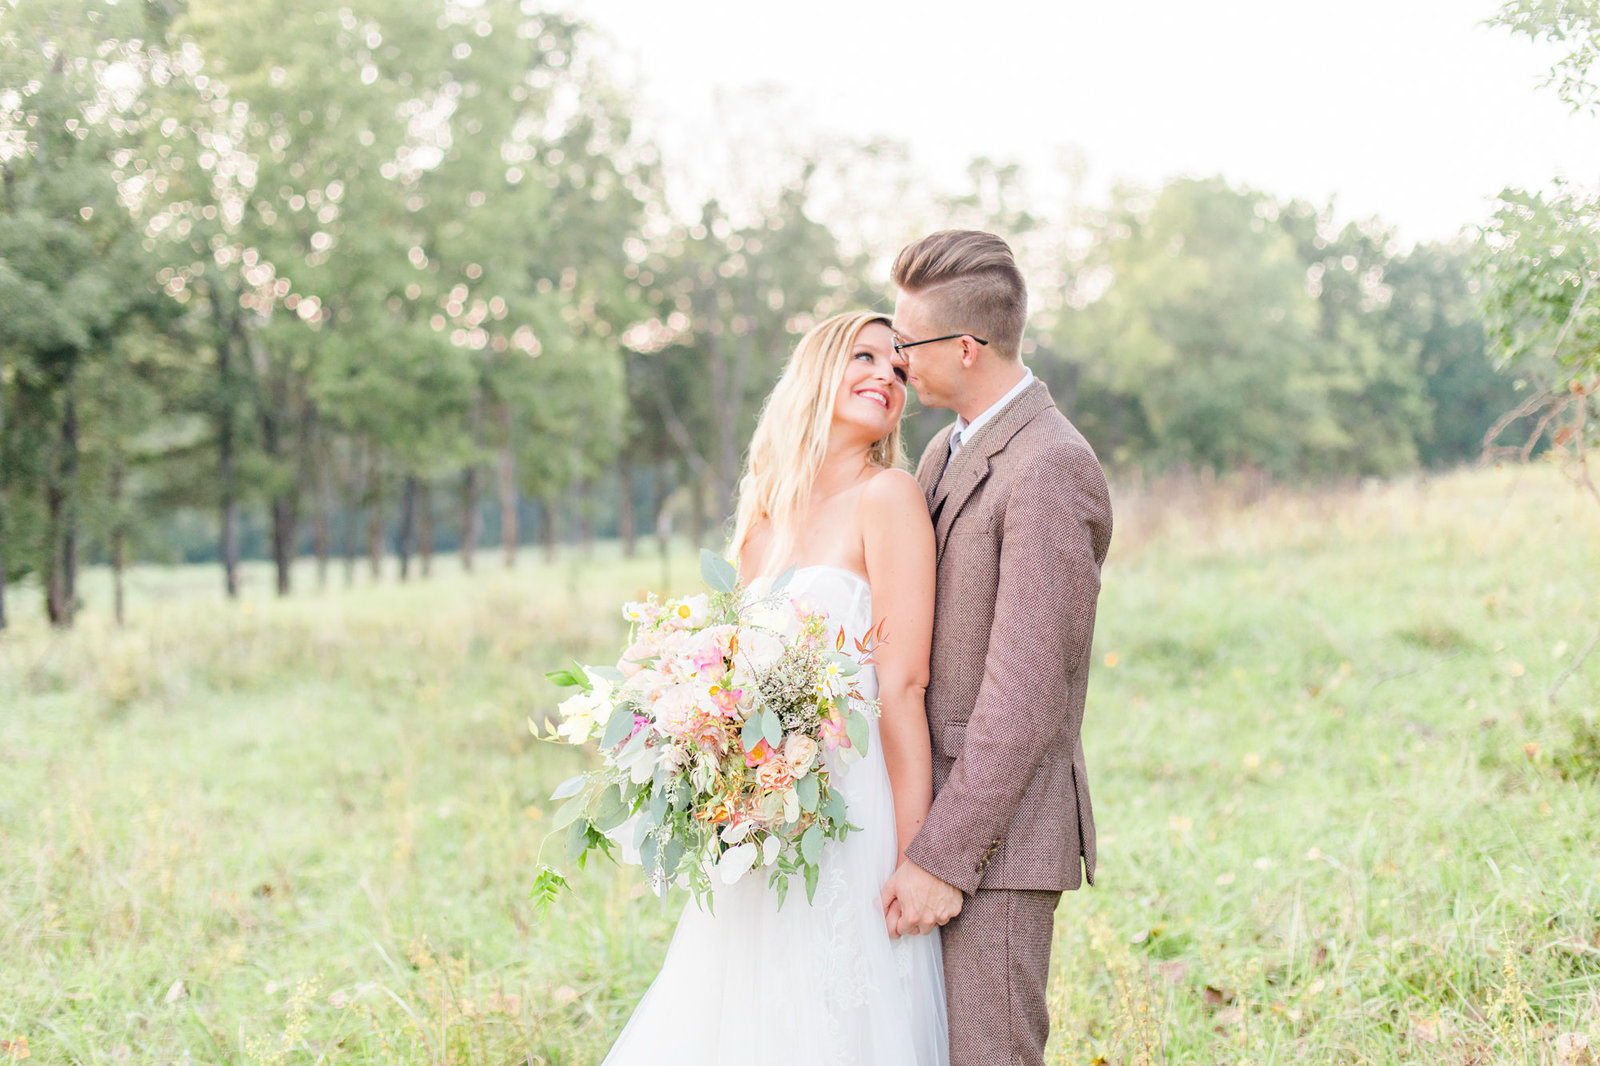 st-louis-wedding-photographer-haue-valley-weddings-barn-field-romantic-alton-belleville-67